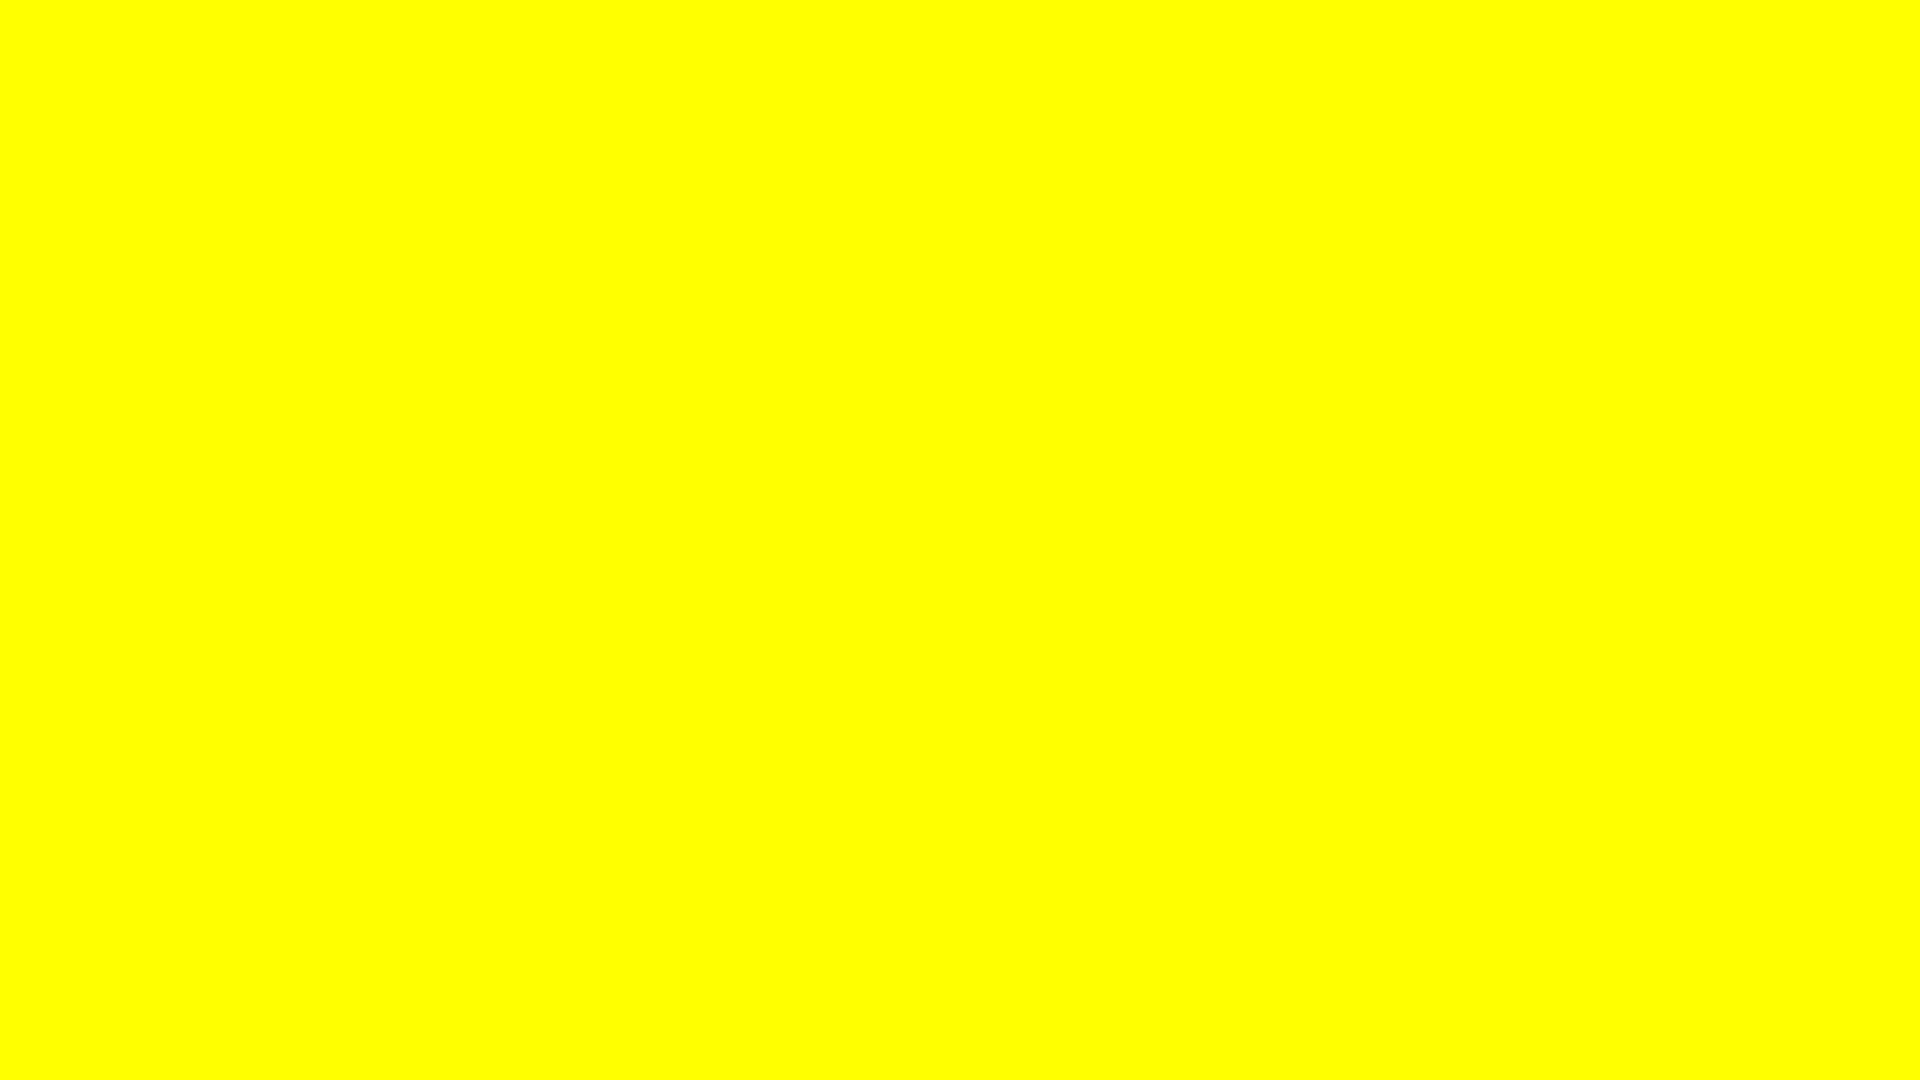 1920x1080 Yellow Solid Color Background